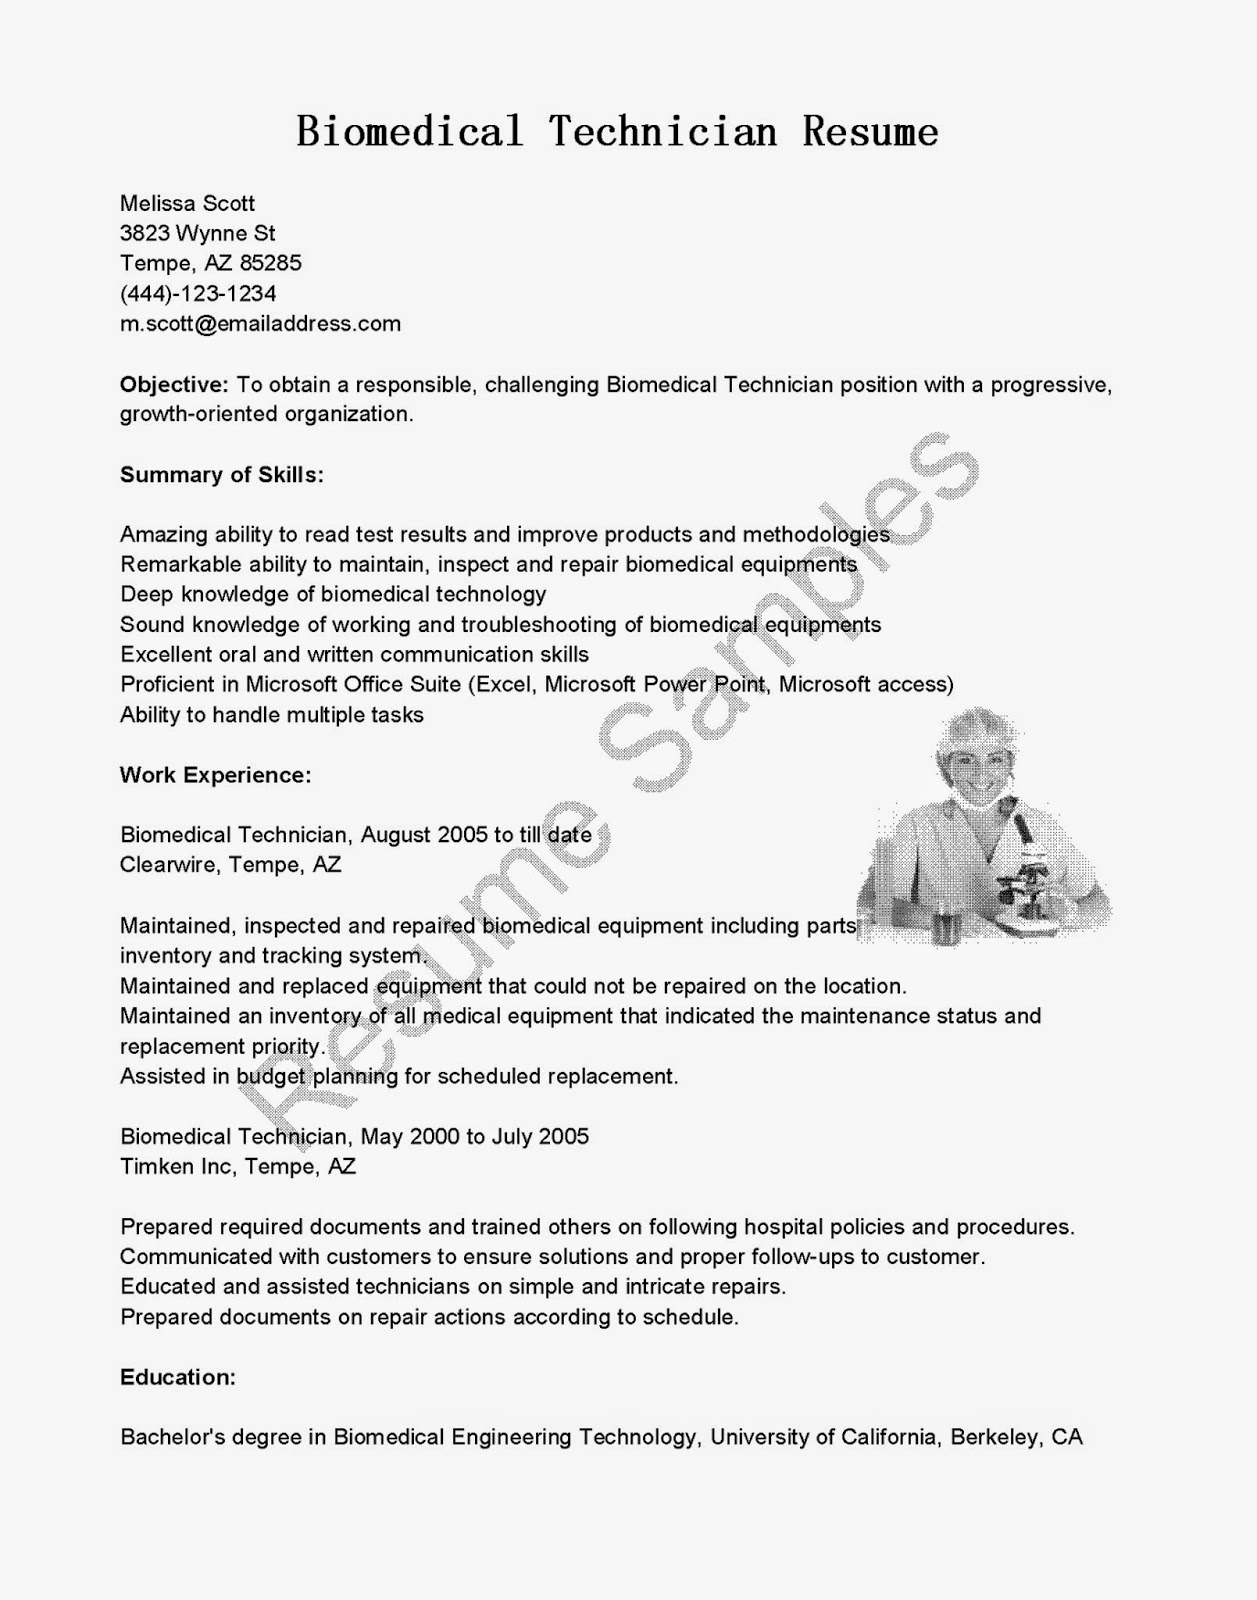 Biomedical Electronics Technician Resume Sample Document Salary Payscale